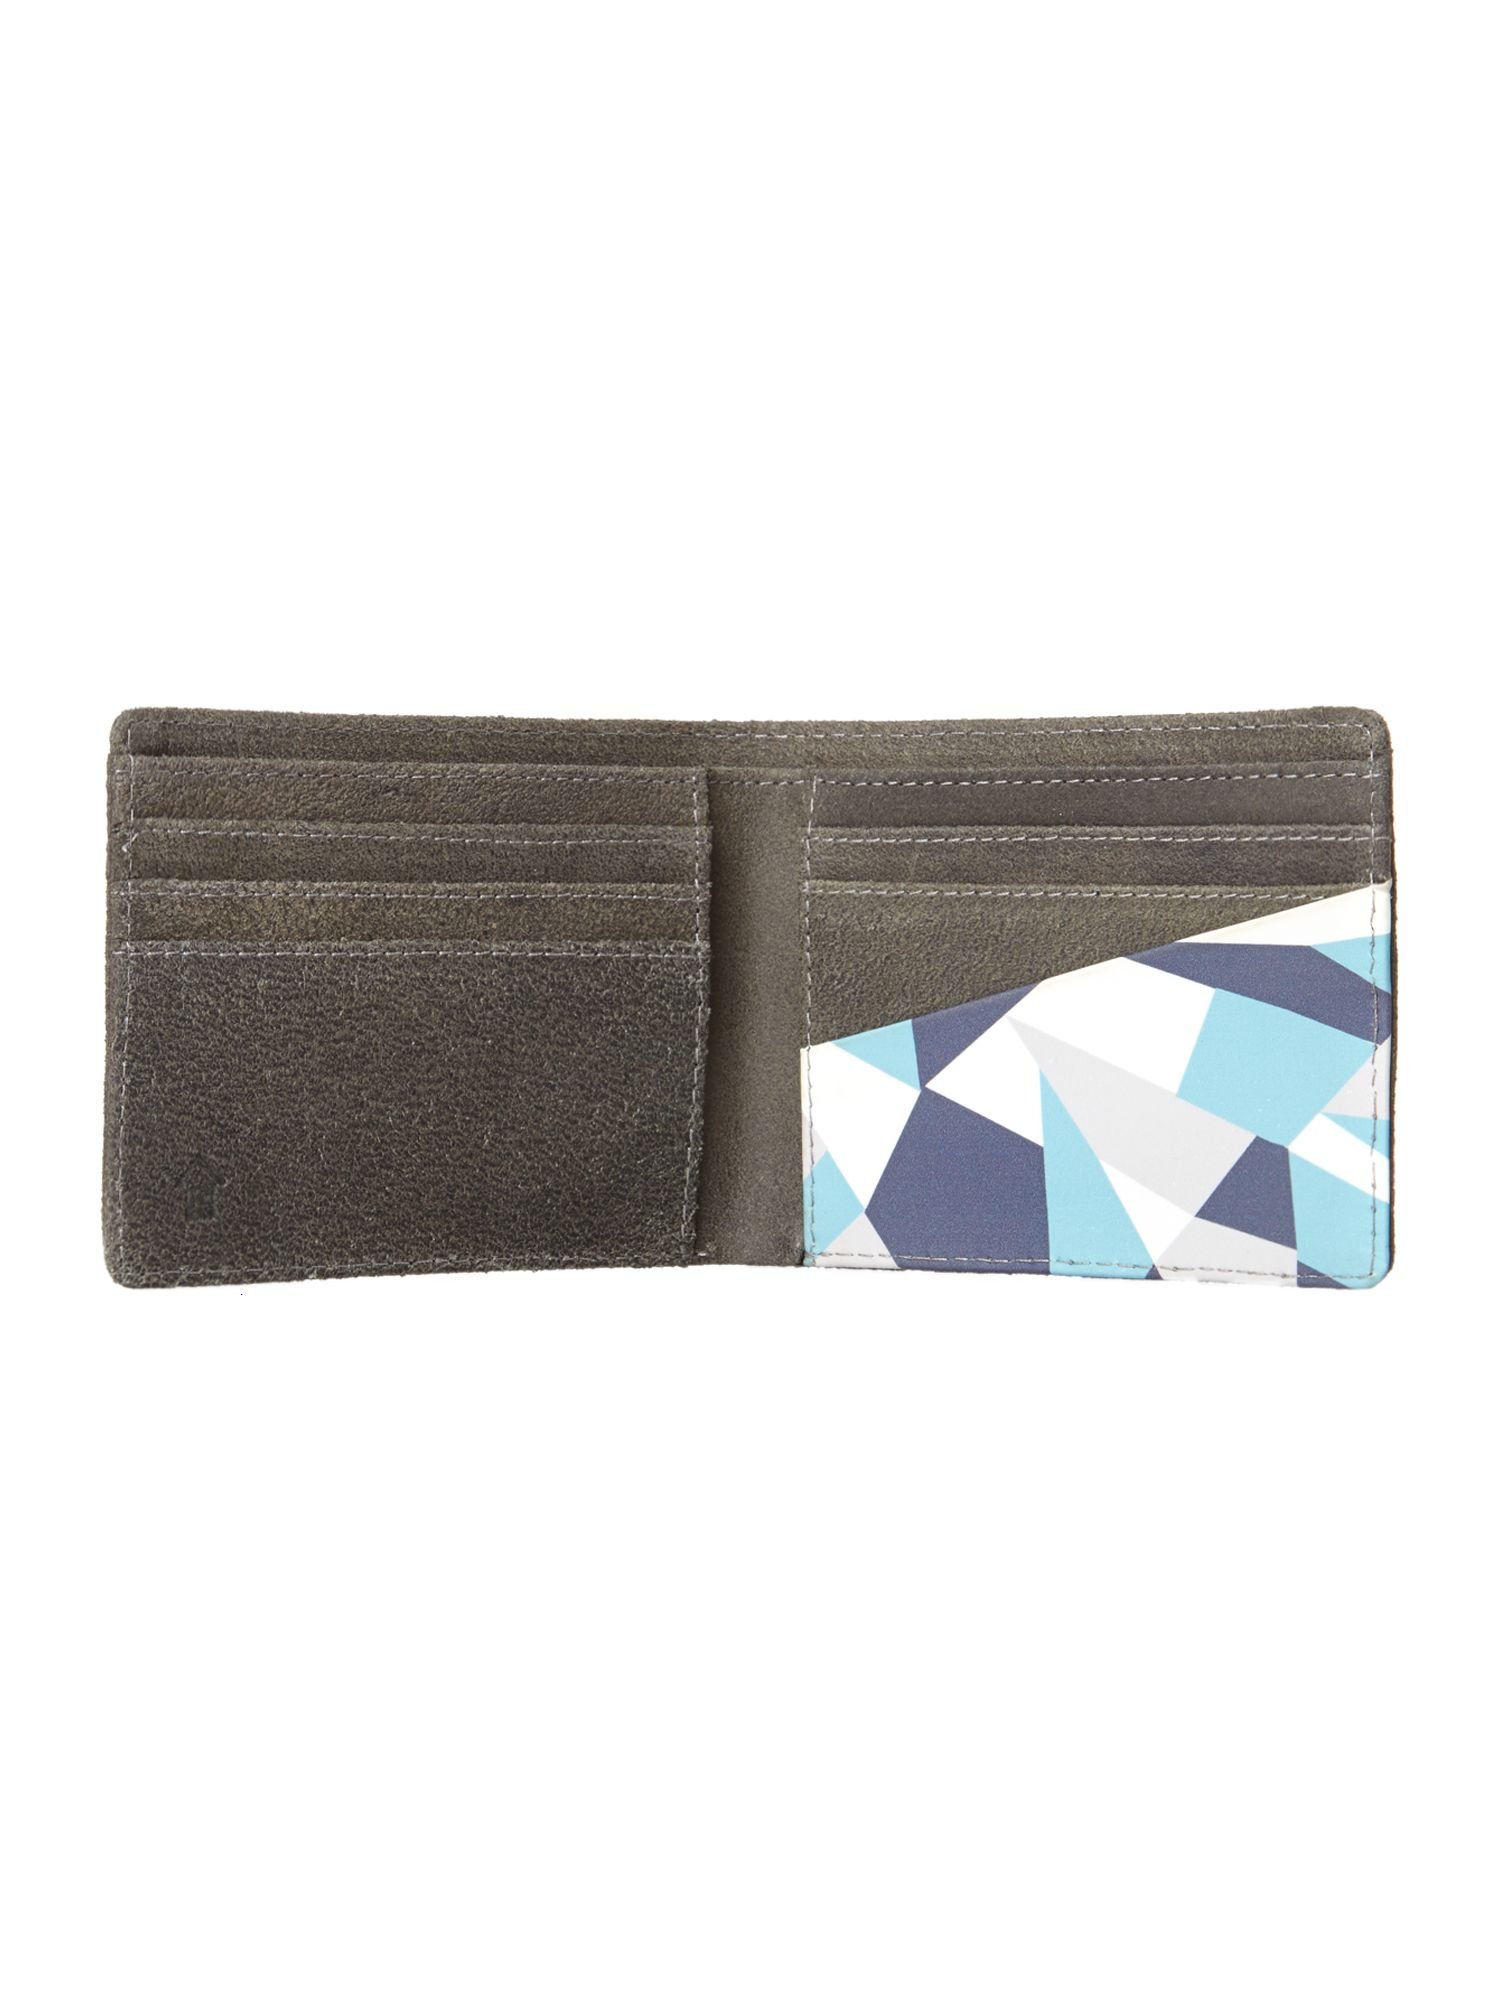 Geo print leather wallet